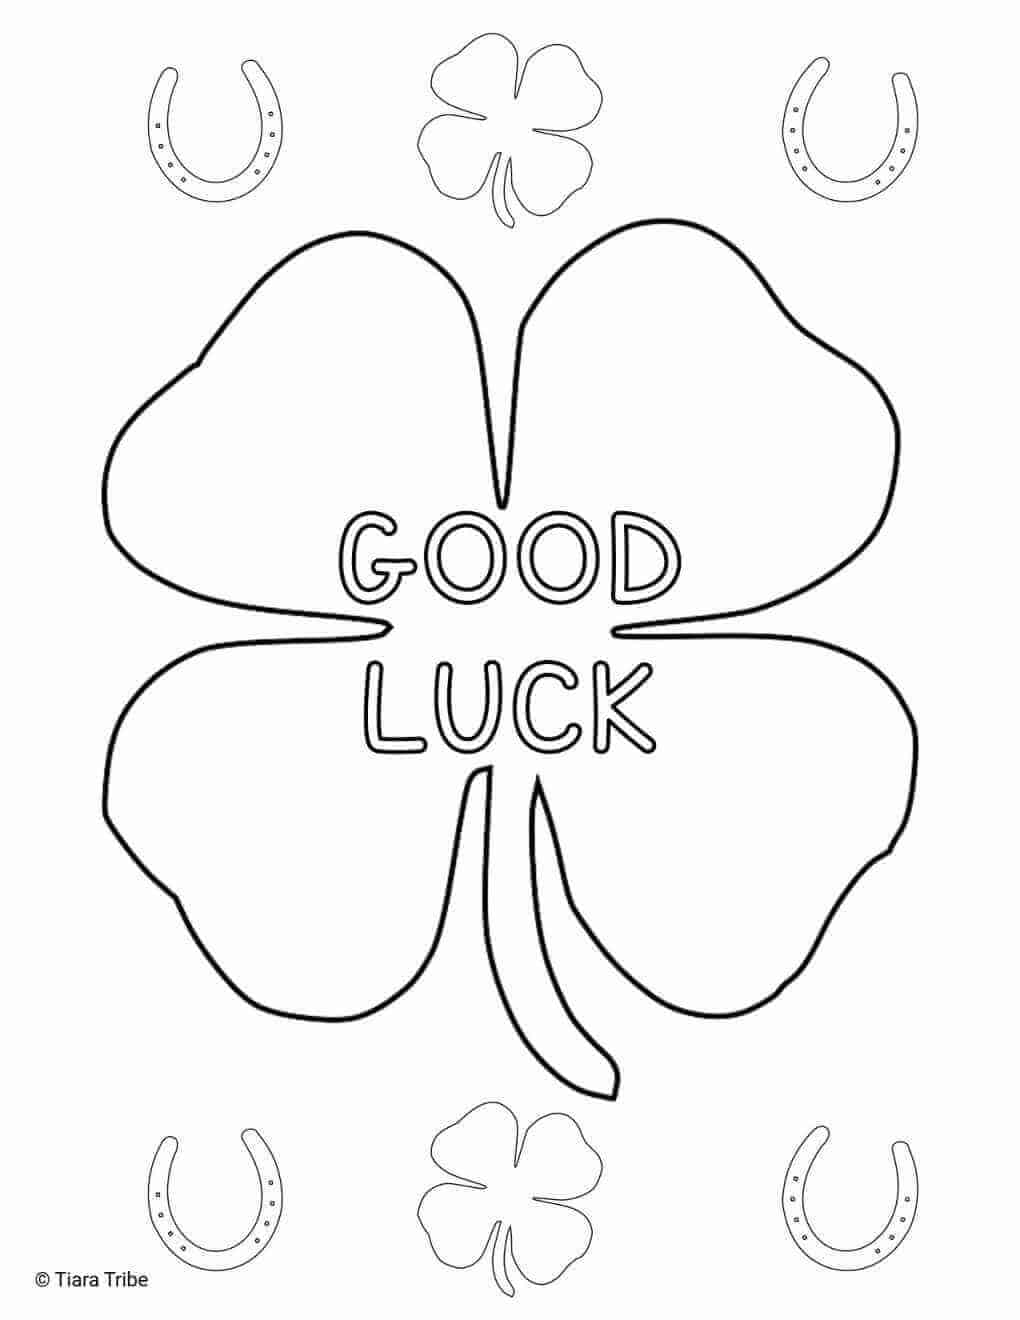 Good Luck Shamrock Coloring Page